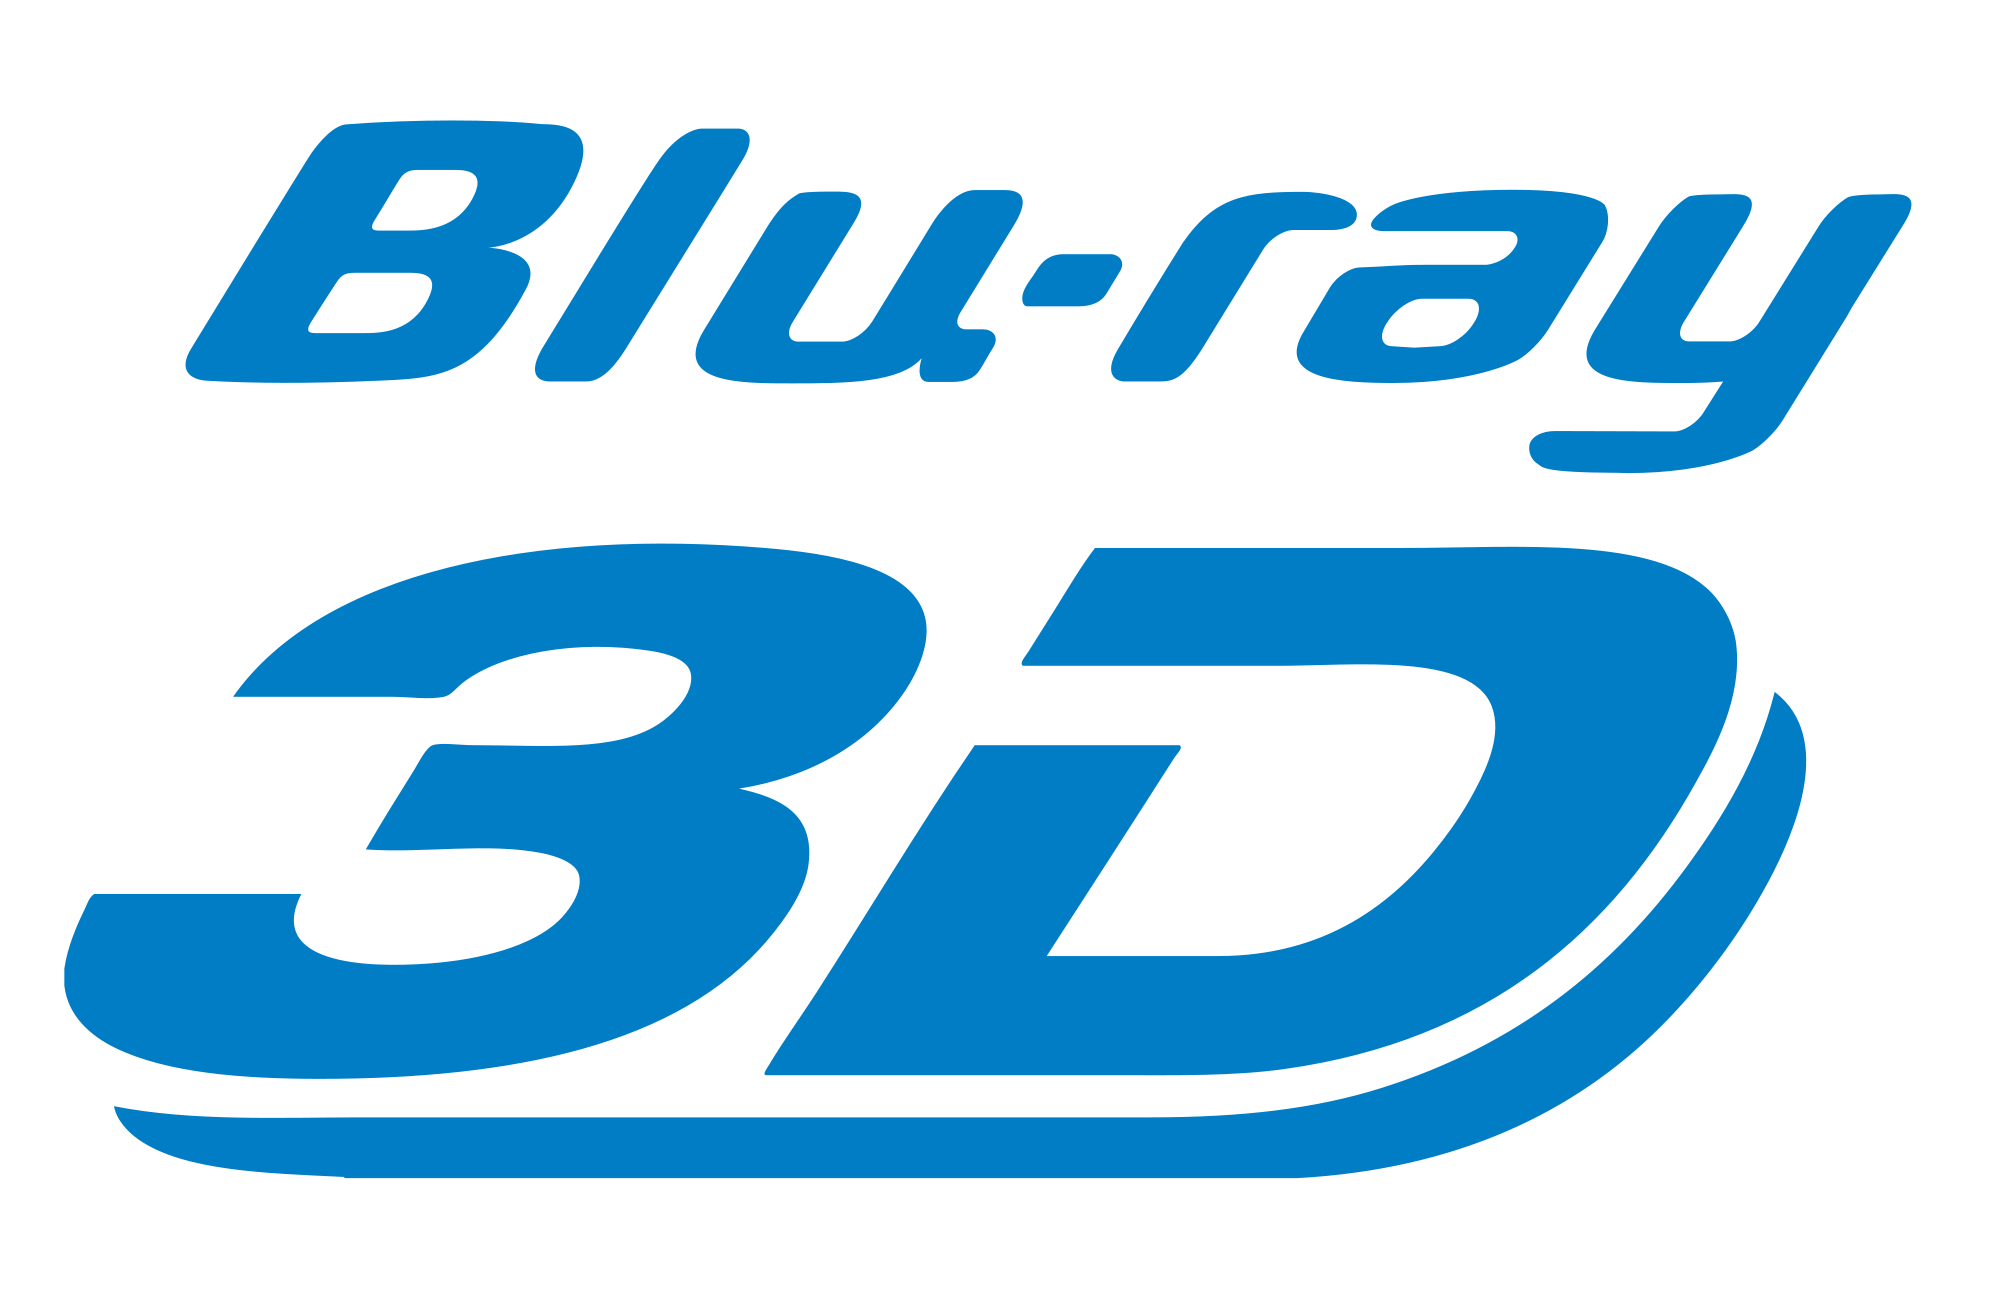 blu ray 3d logopedia the logo and branding site. Black Bedroom Furniture Sets. Home Design Ideas